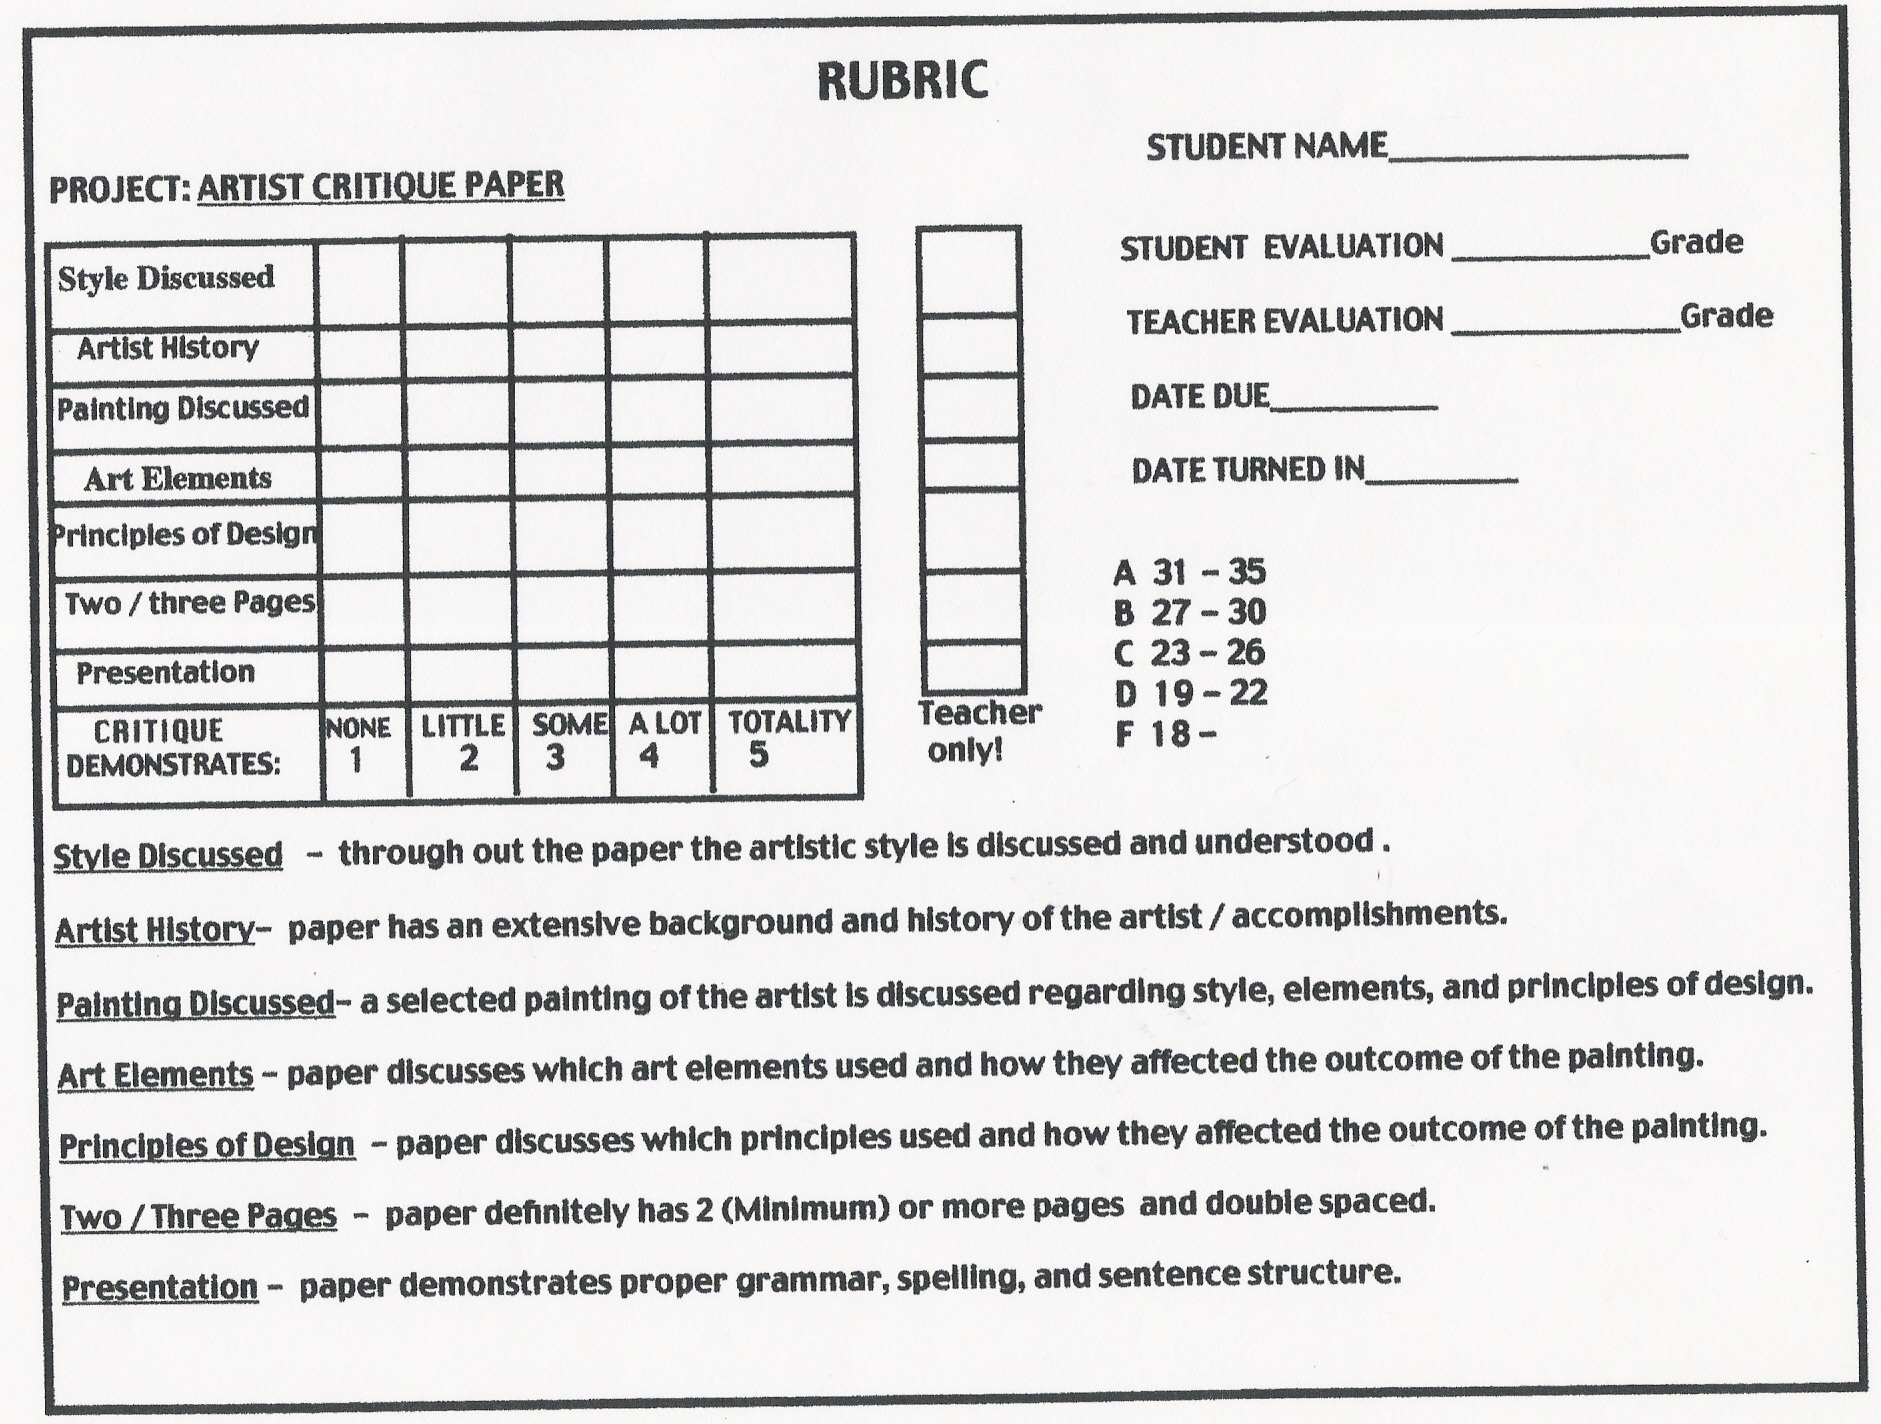 research paper rubric middle school Irubric jx6w62b: research the approved topic and question submit double spaced, 14 point tnr font following mla guidelines include a bibliography citing resources used researching the paper paper will be graded on quality of research to support the topic, effective use of information gained through research,.